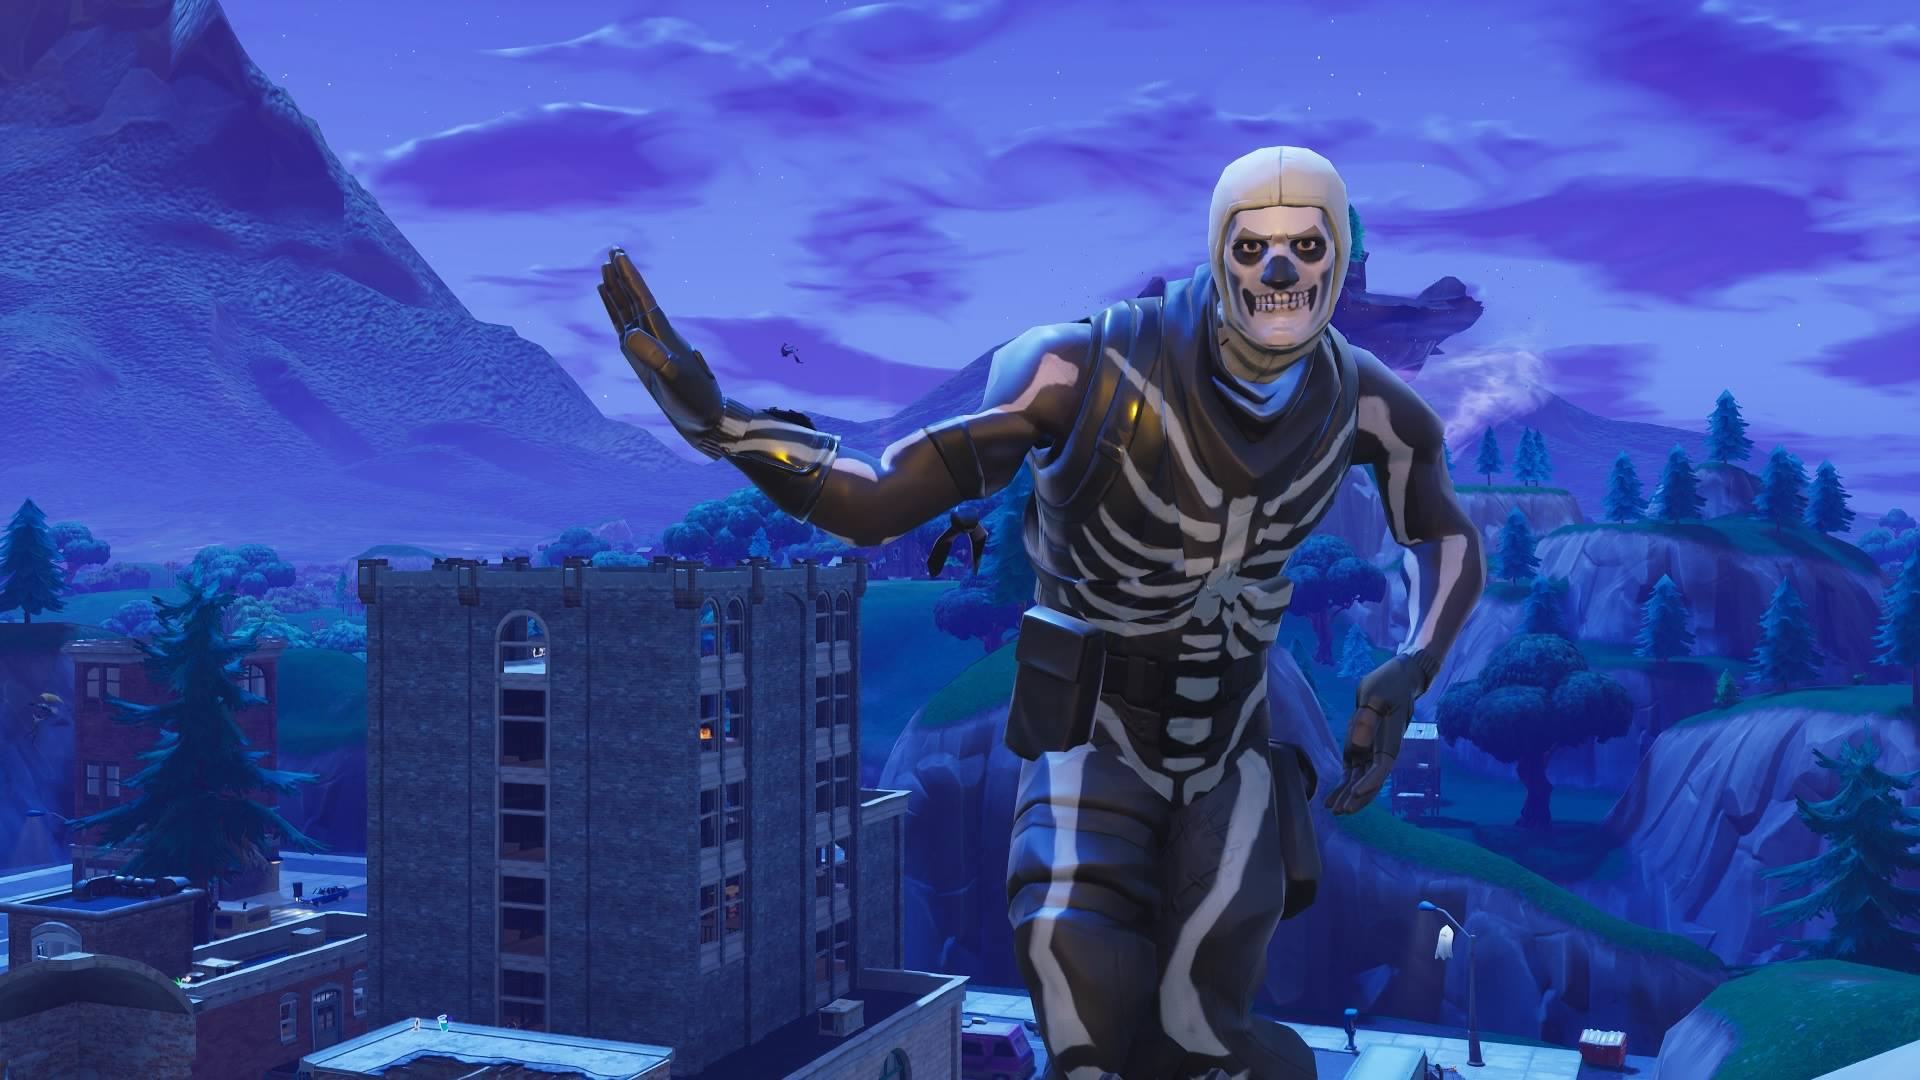 U0027Fortniteu0027 Clock Tower, Pink Tree, And Porcelain Throne Locations And Video  | Inverse